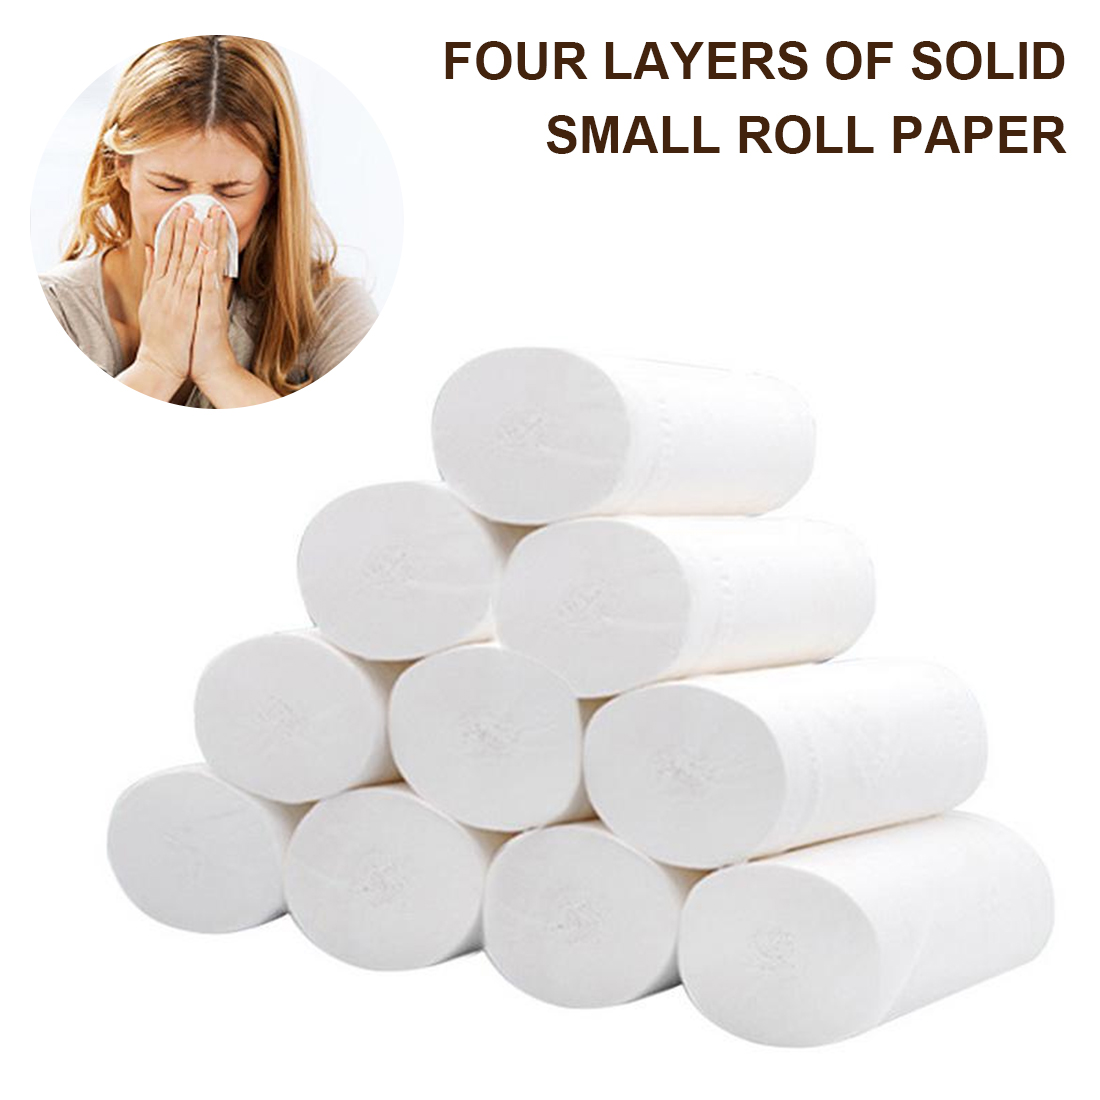 10 Rolls/Lot Toilet Roll Paper 4 Layer Primary Wood Pulp Home Bath Tissue Roll Household Soft Toilet Towels For Home Public Hote